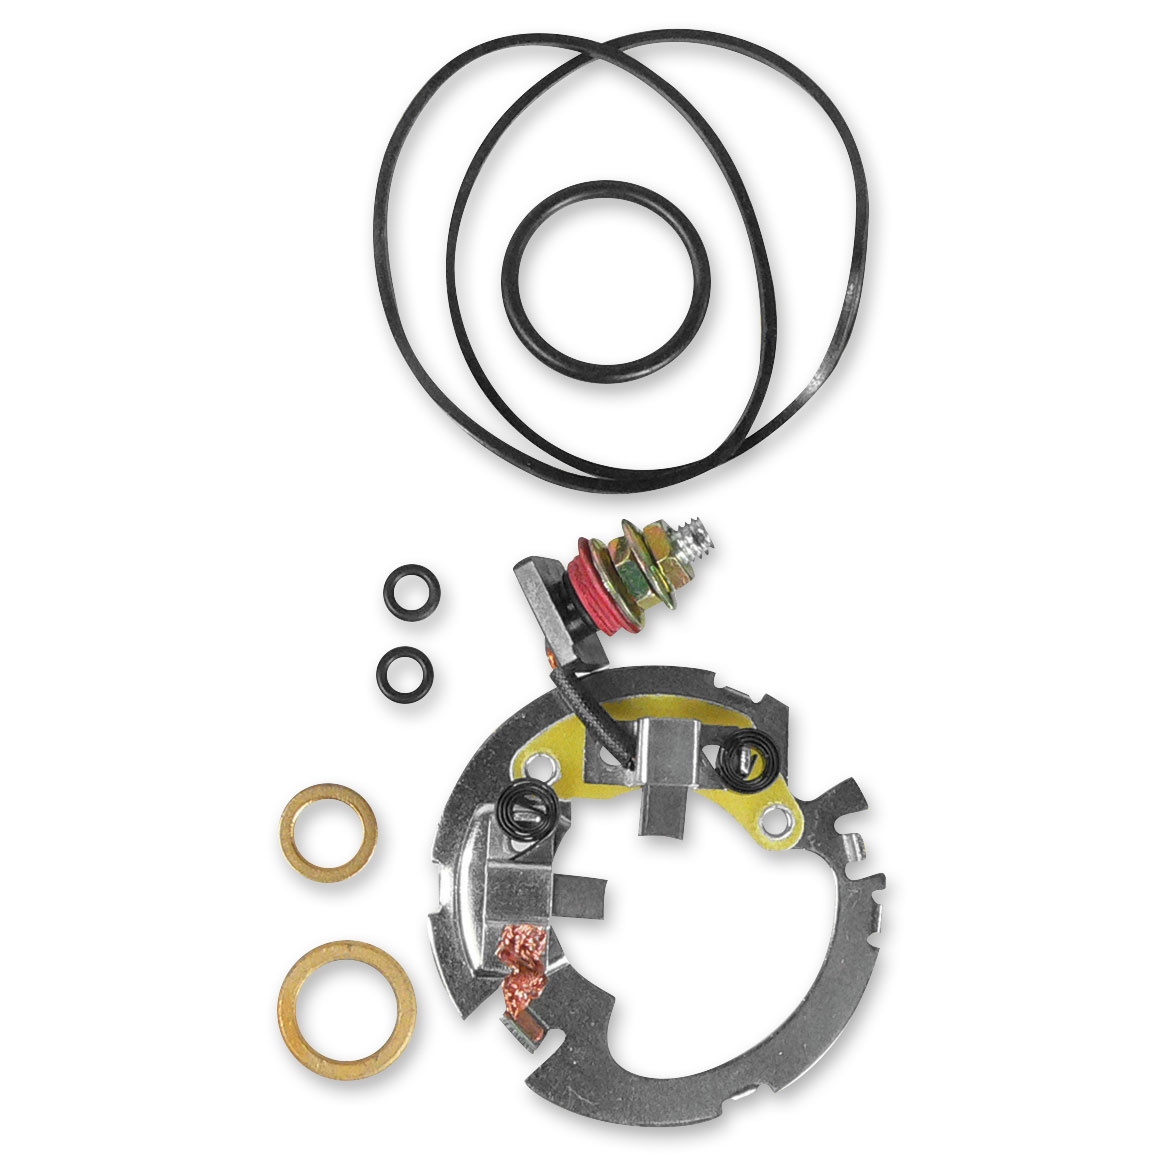 Arrowhead Electrical Products Starter Repair Kit